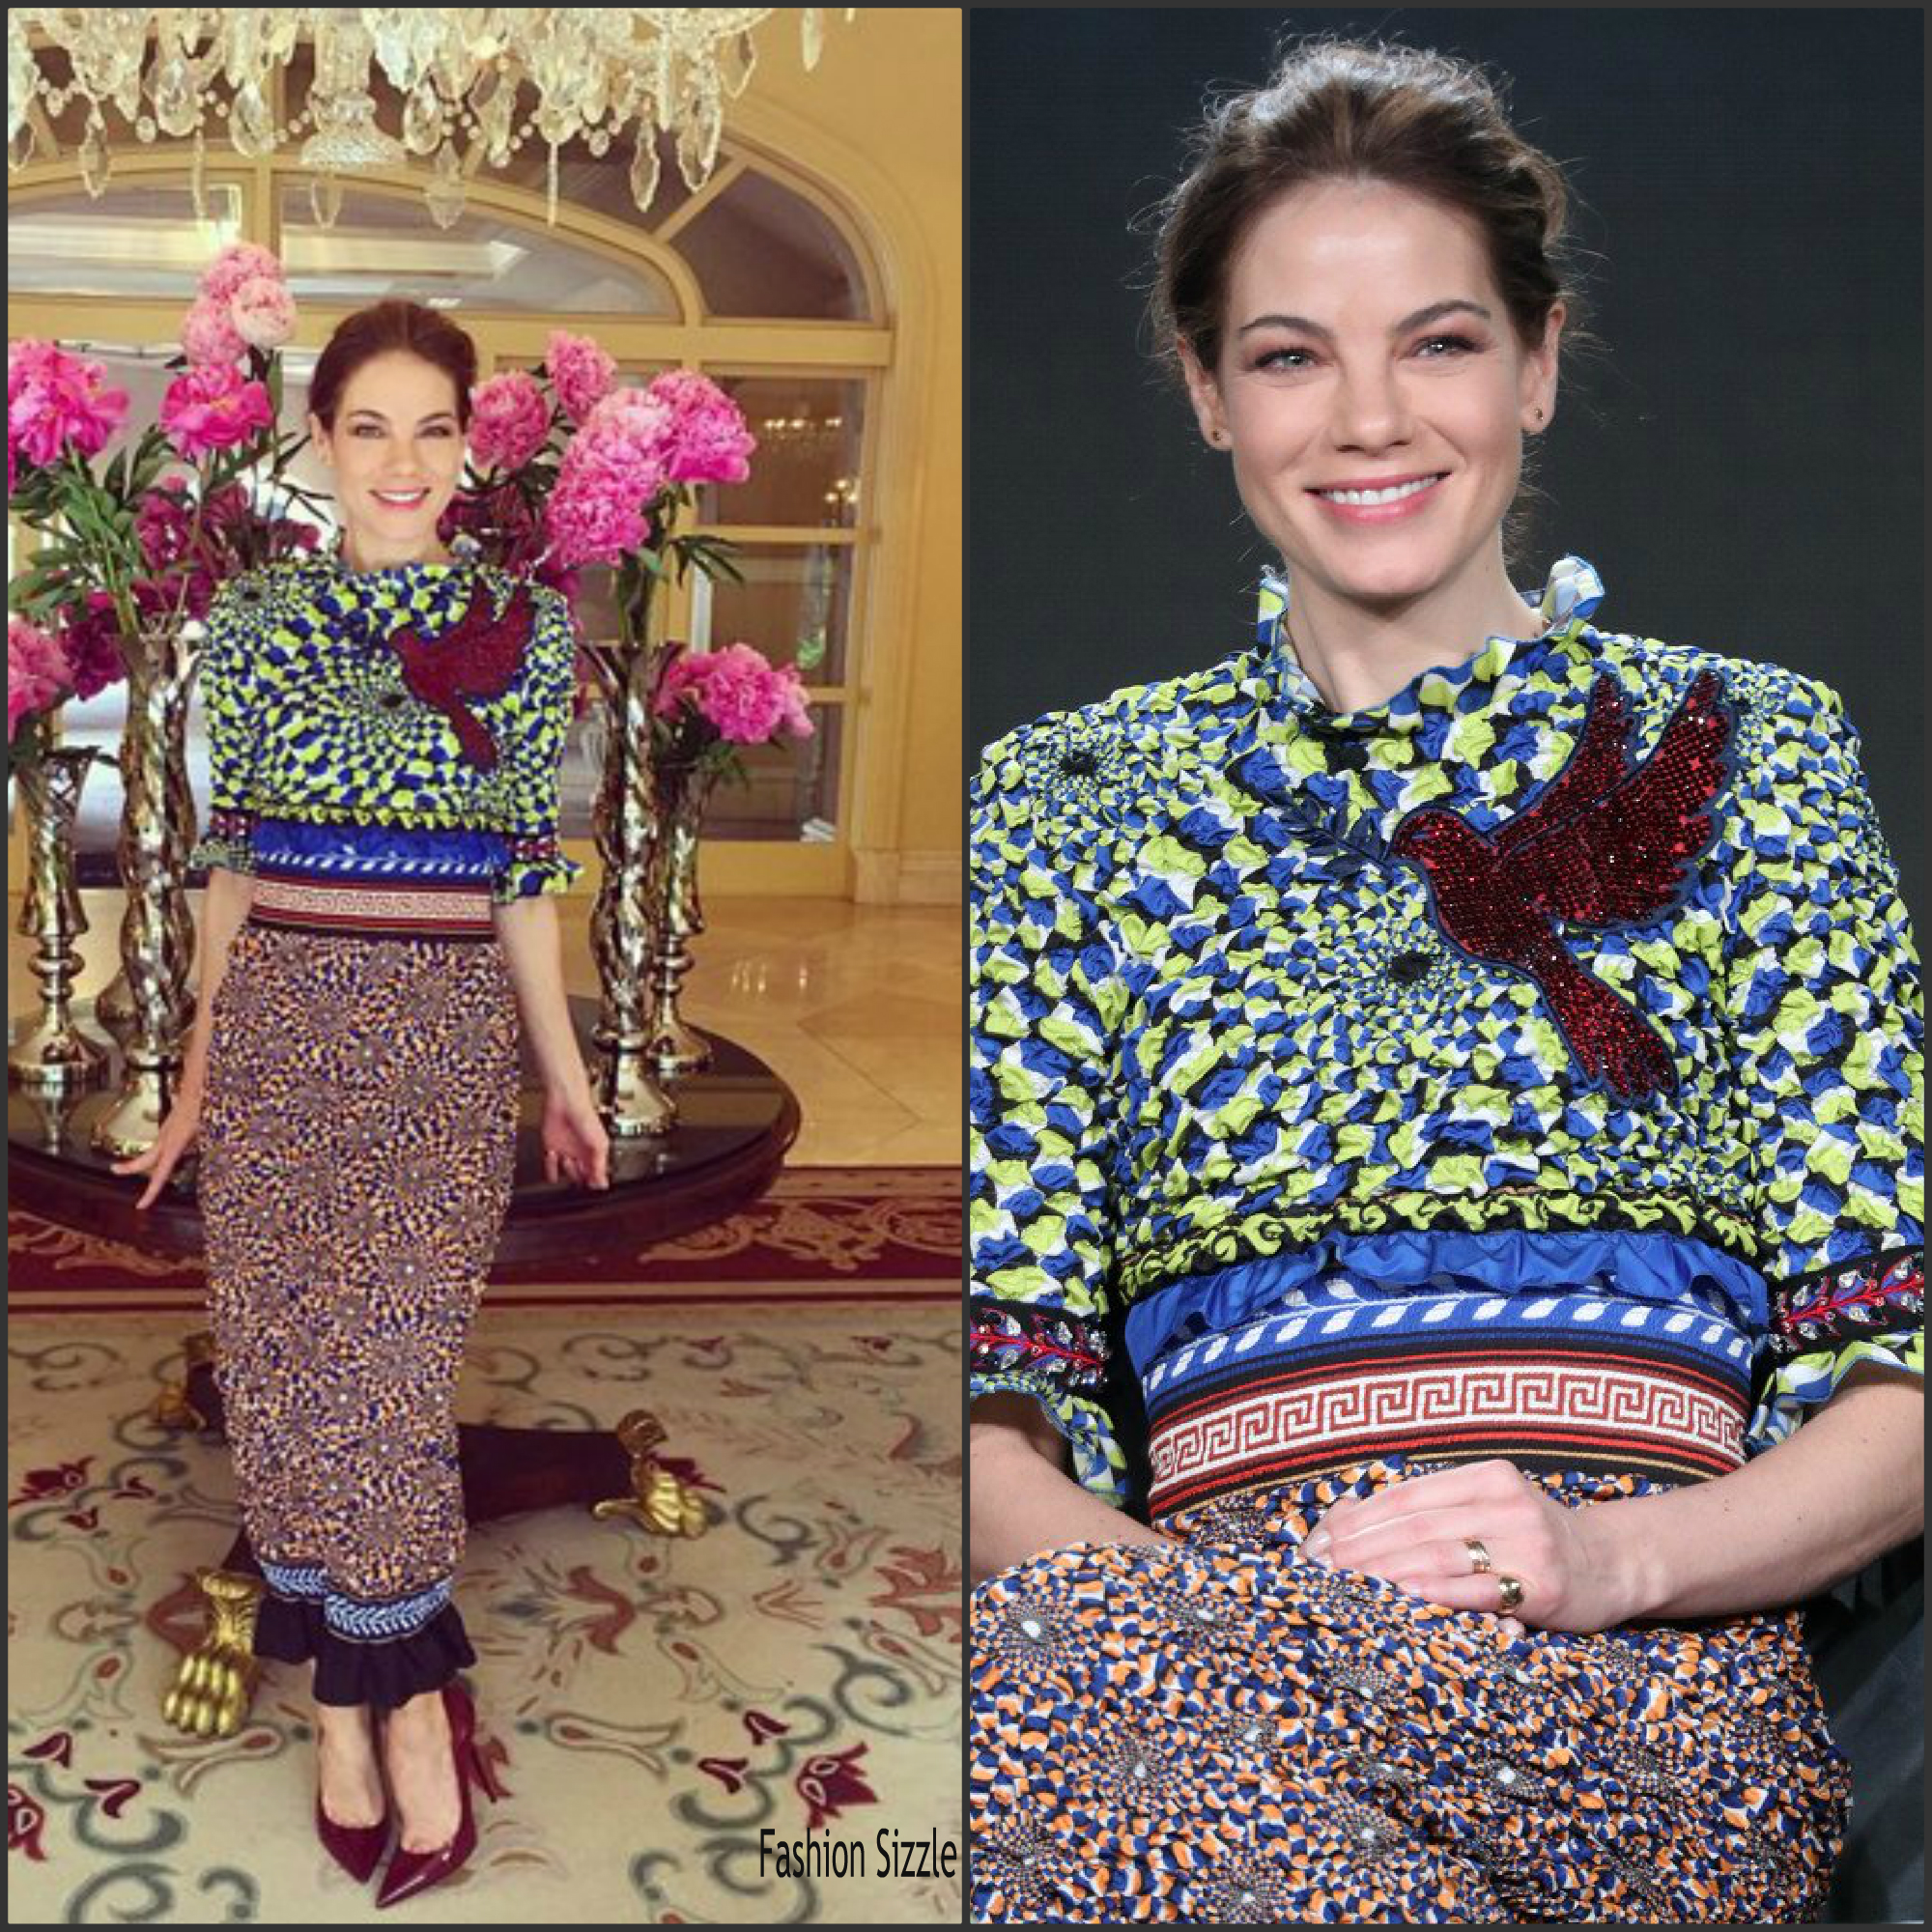 michelle-monaghan-in-mary-katrantzou-at-2017-hulu-winter-tca-tour